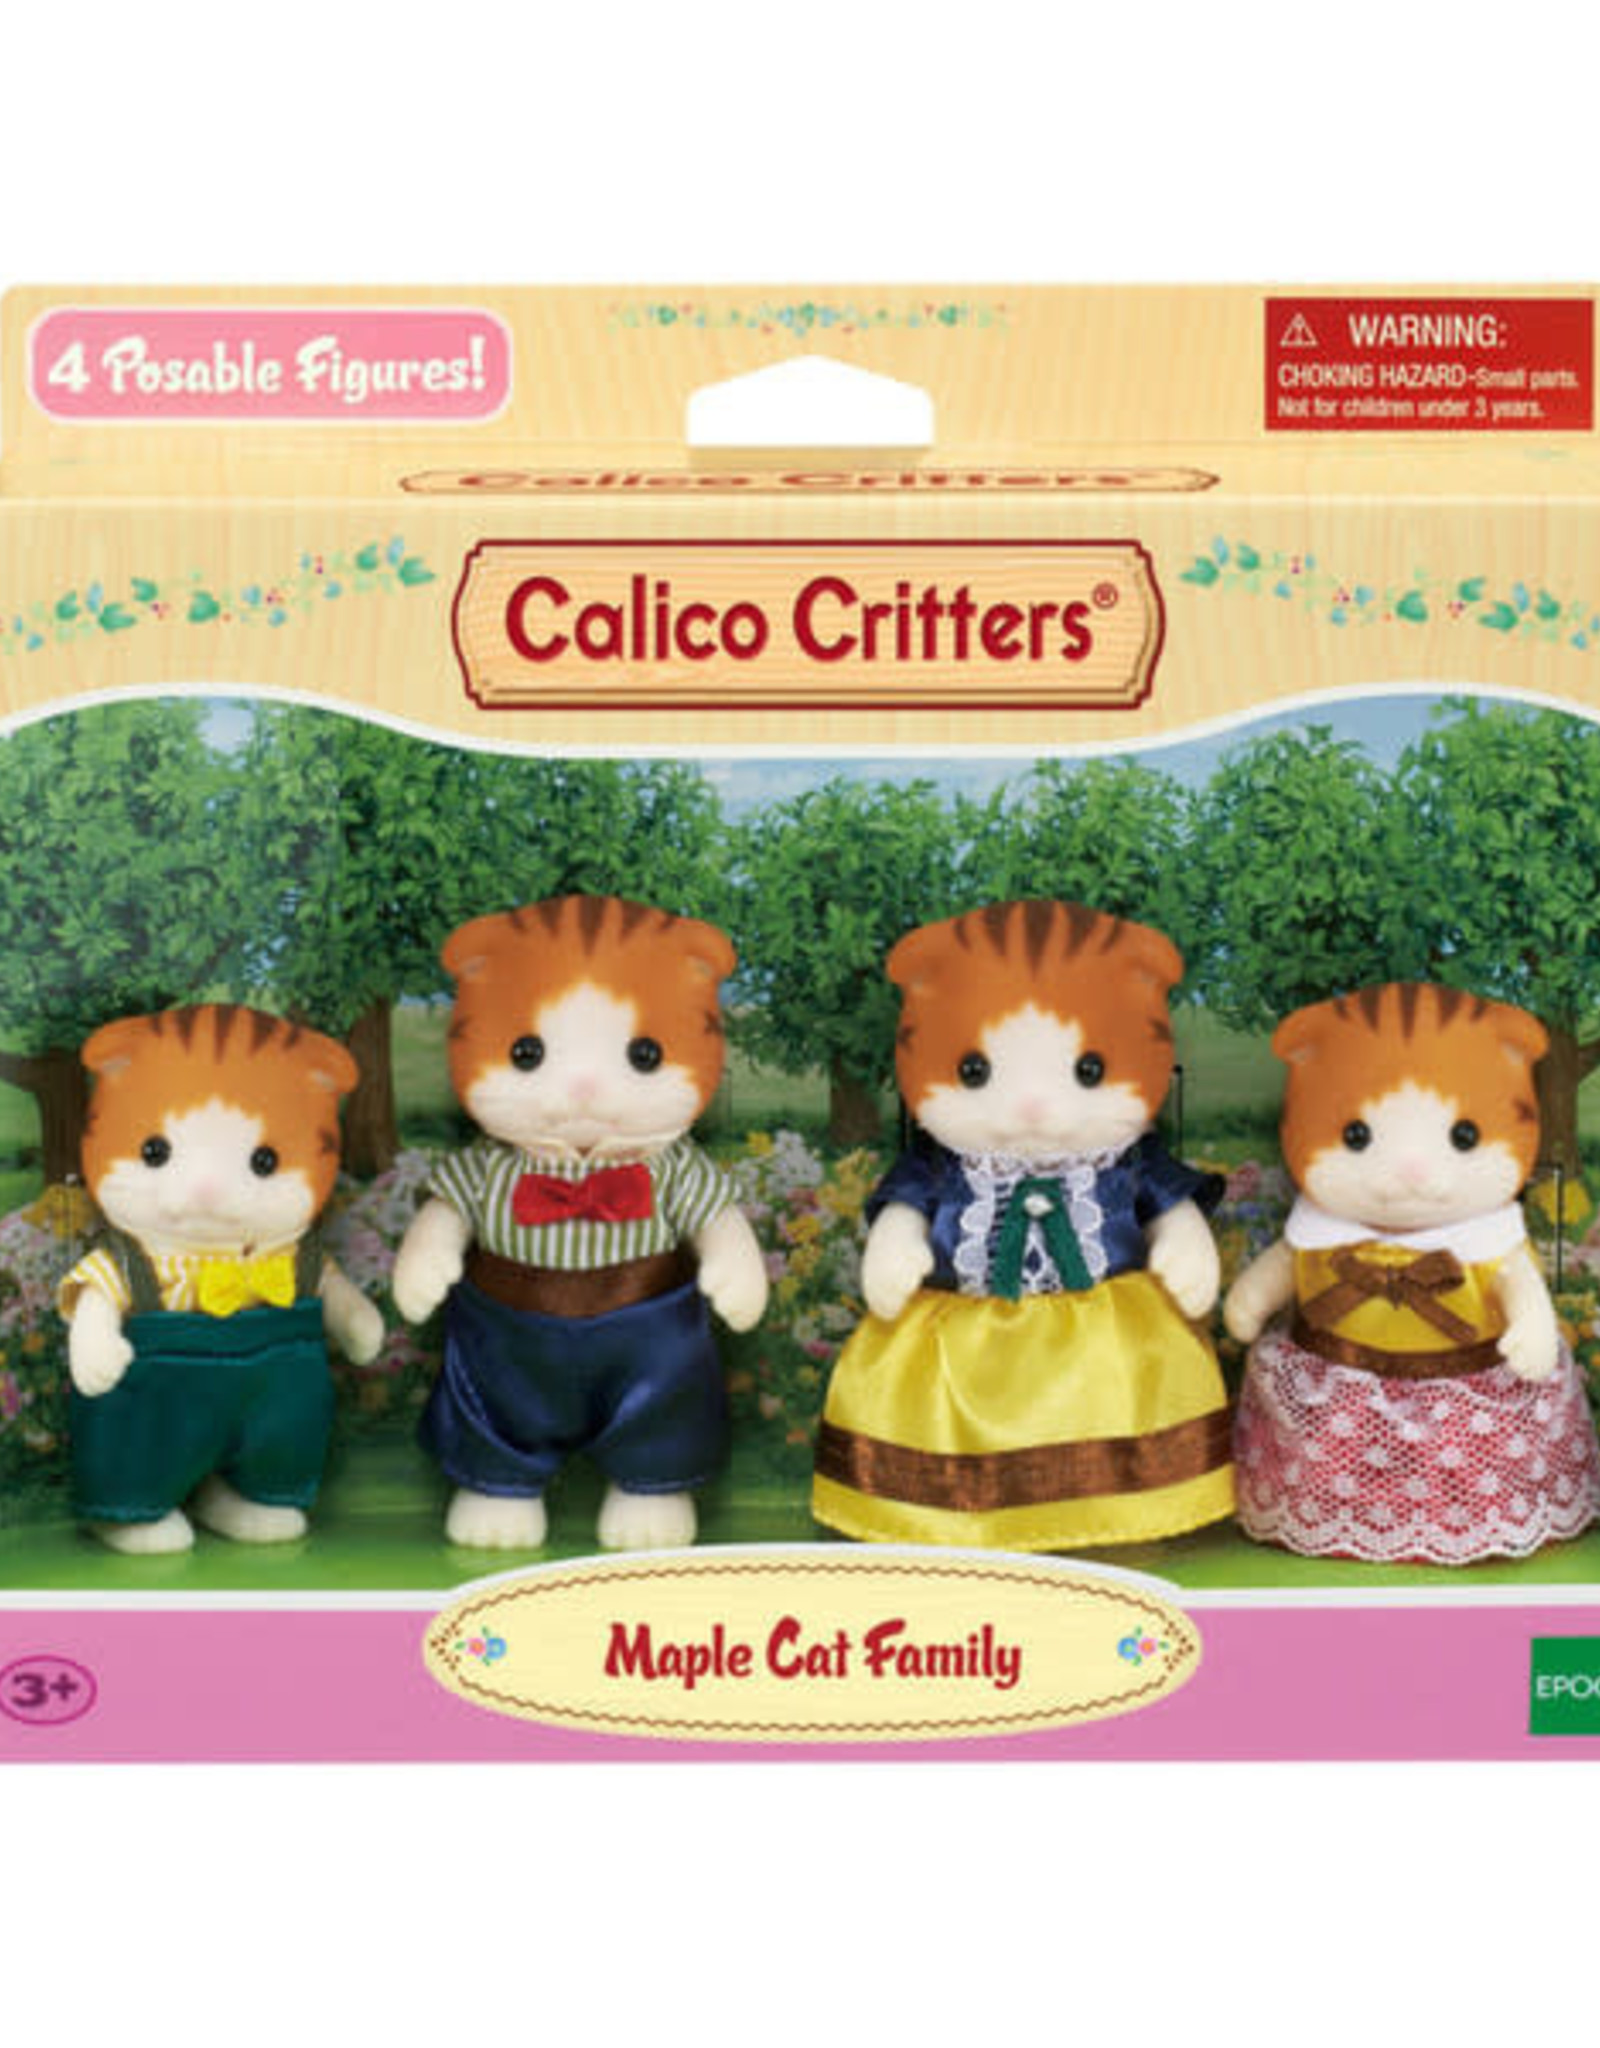 Calico Critters: Maple Cat Family